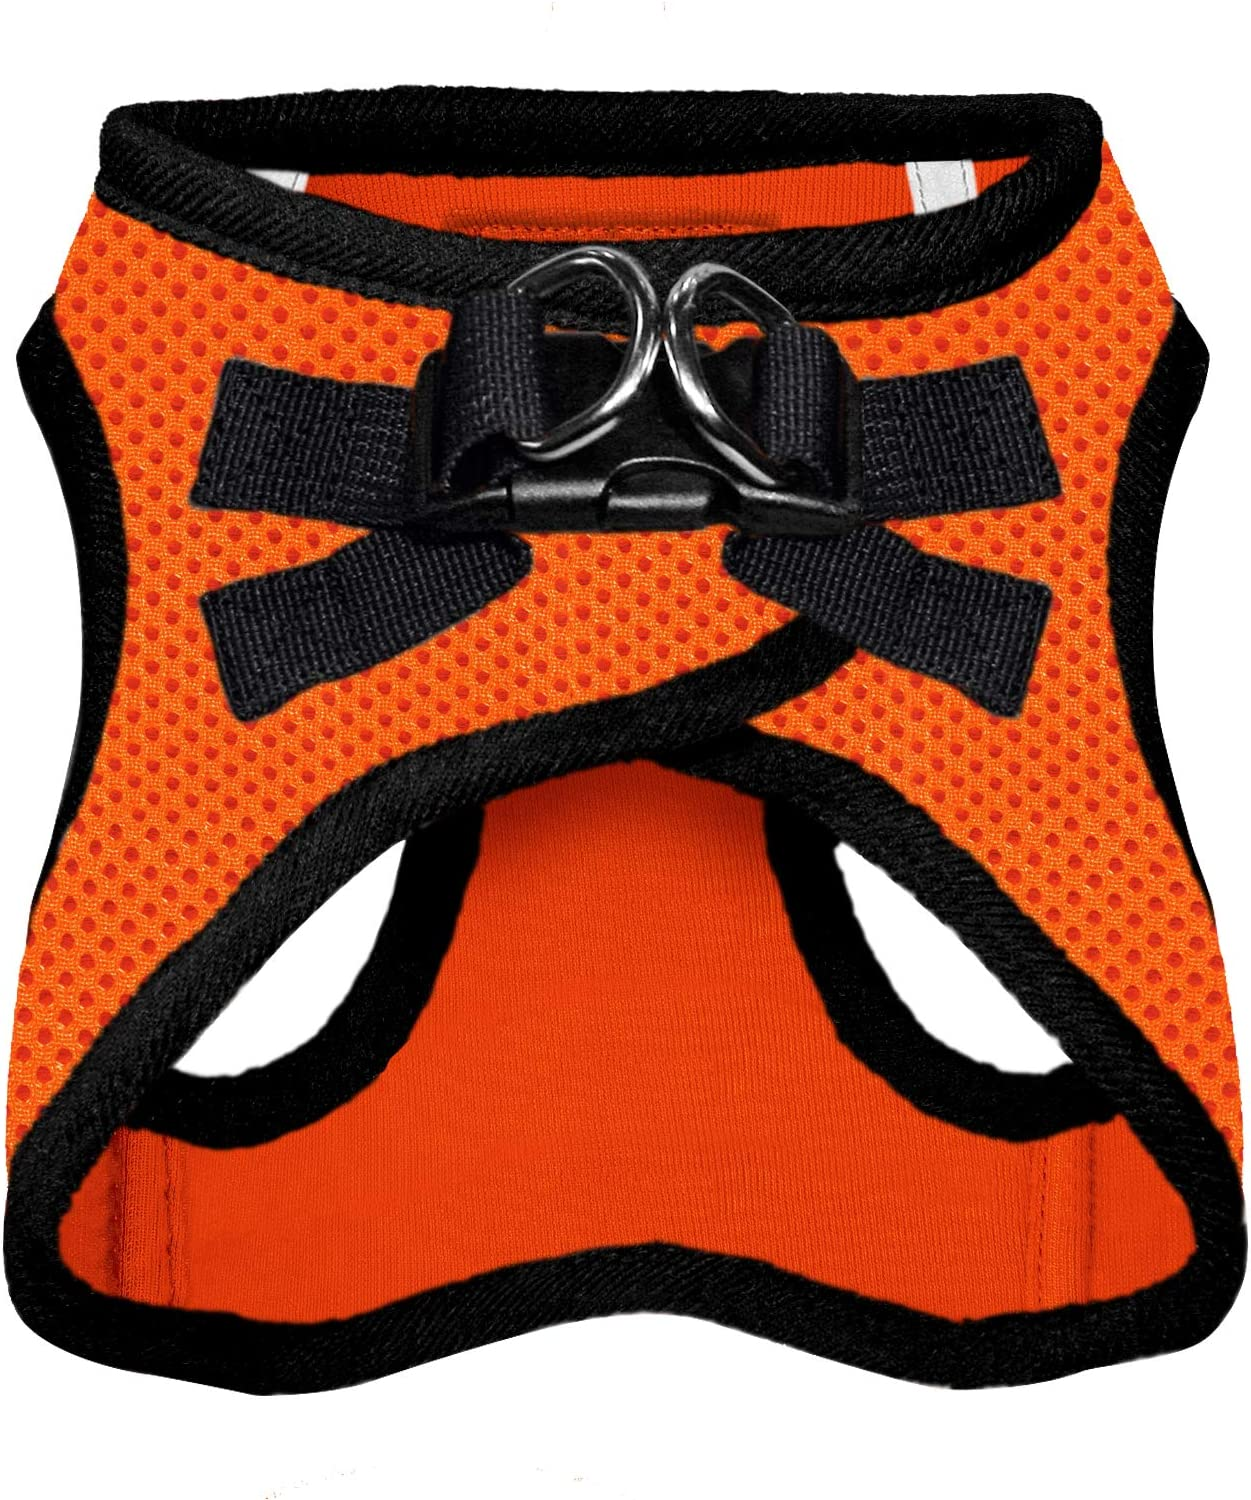 Voyager Step-in Air Dog Harness All Weather Mesh Step in Vest Harness for Small and Medium Dogs by Best Pet Supplies